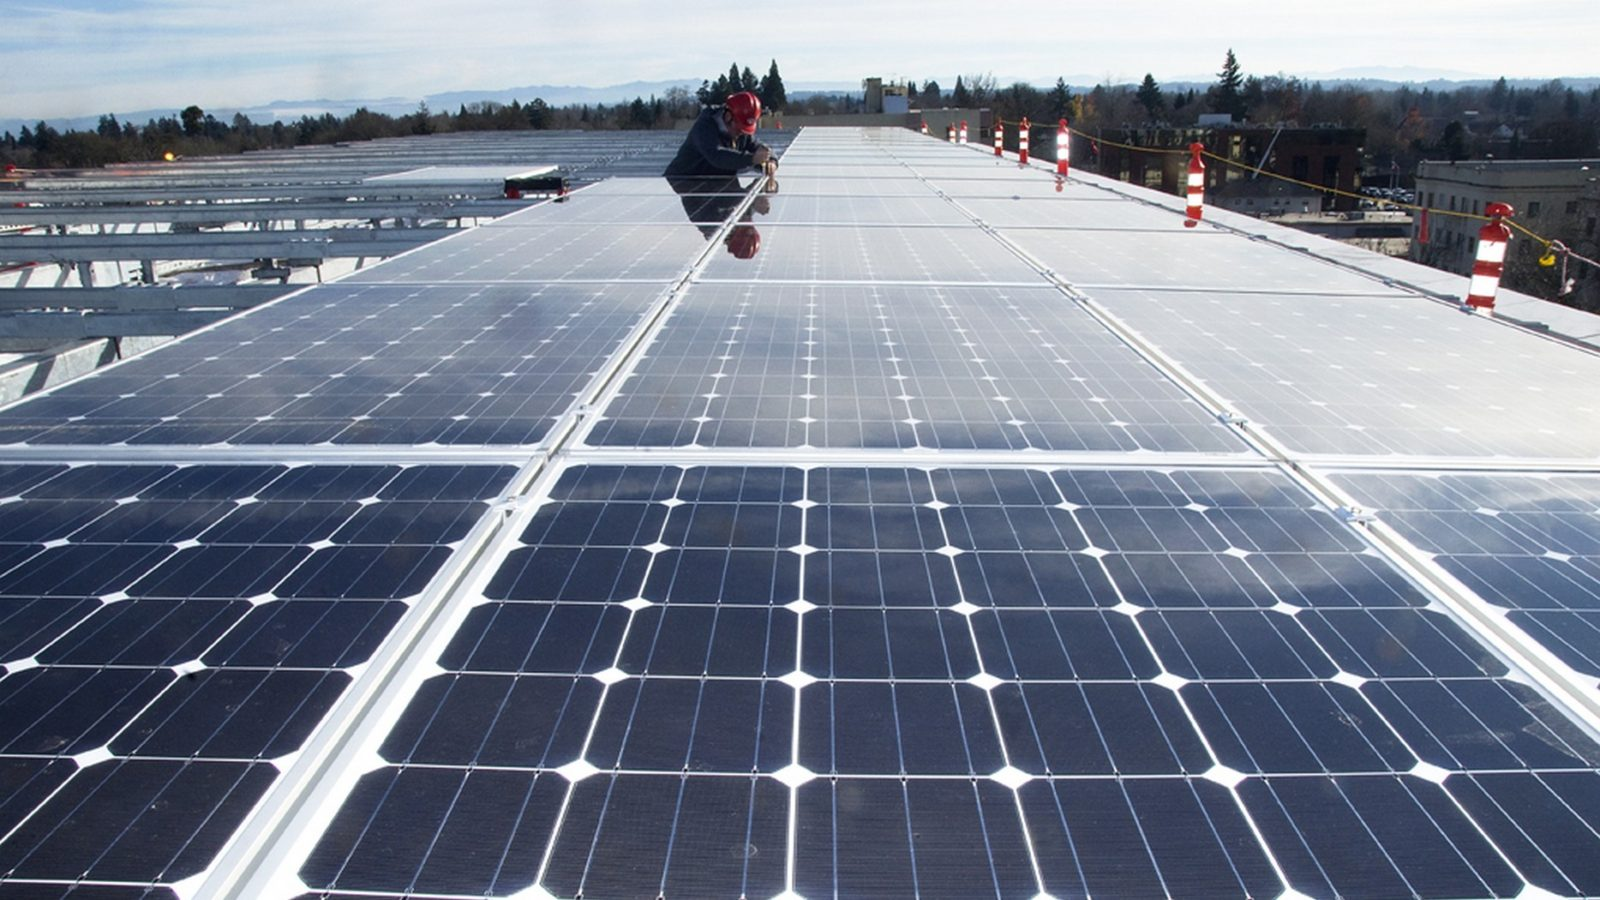 rooftops-solar-panels-could-cover-all-2018-energy-consumption-needs